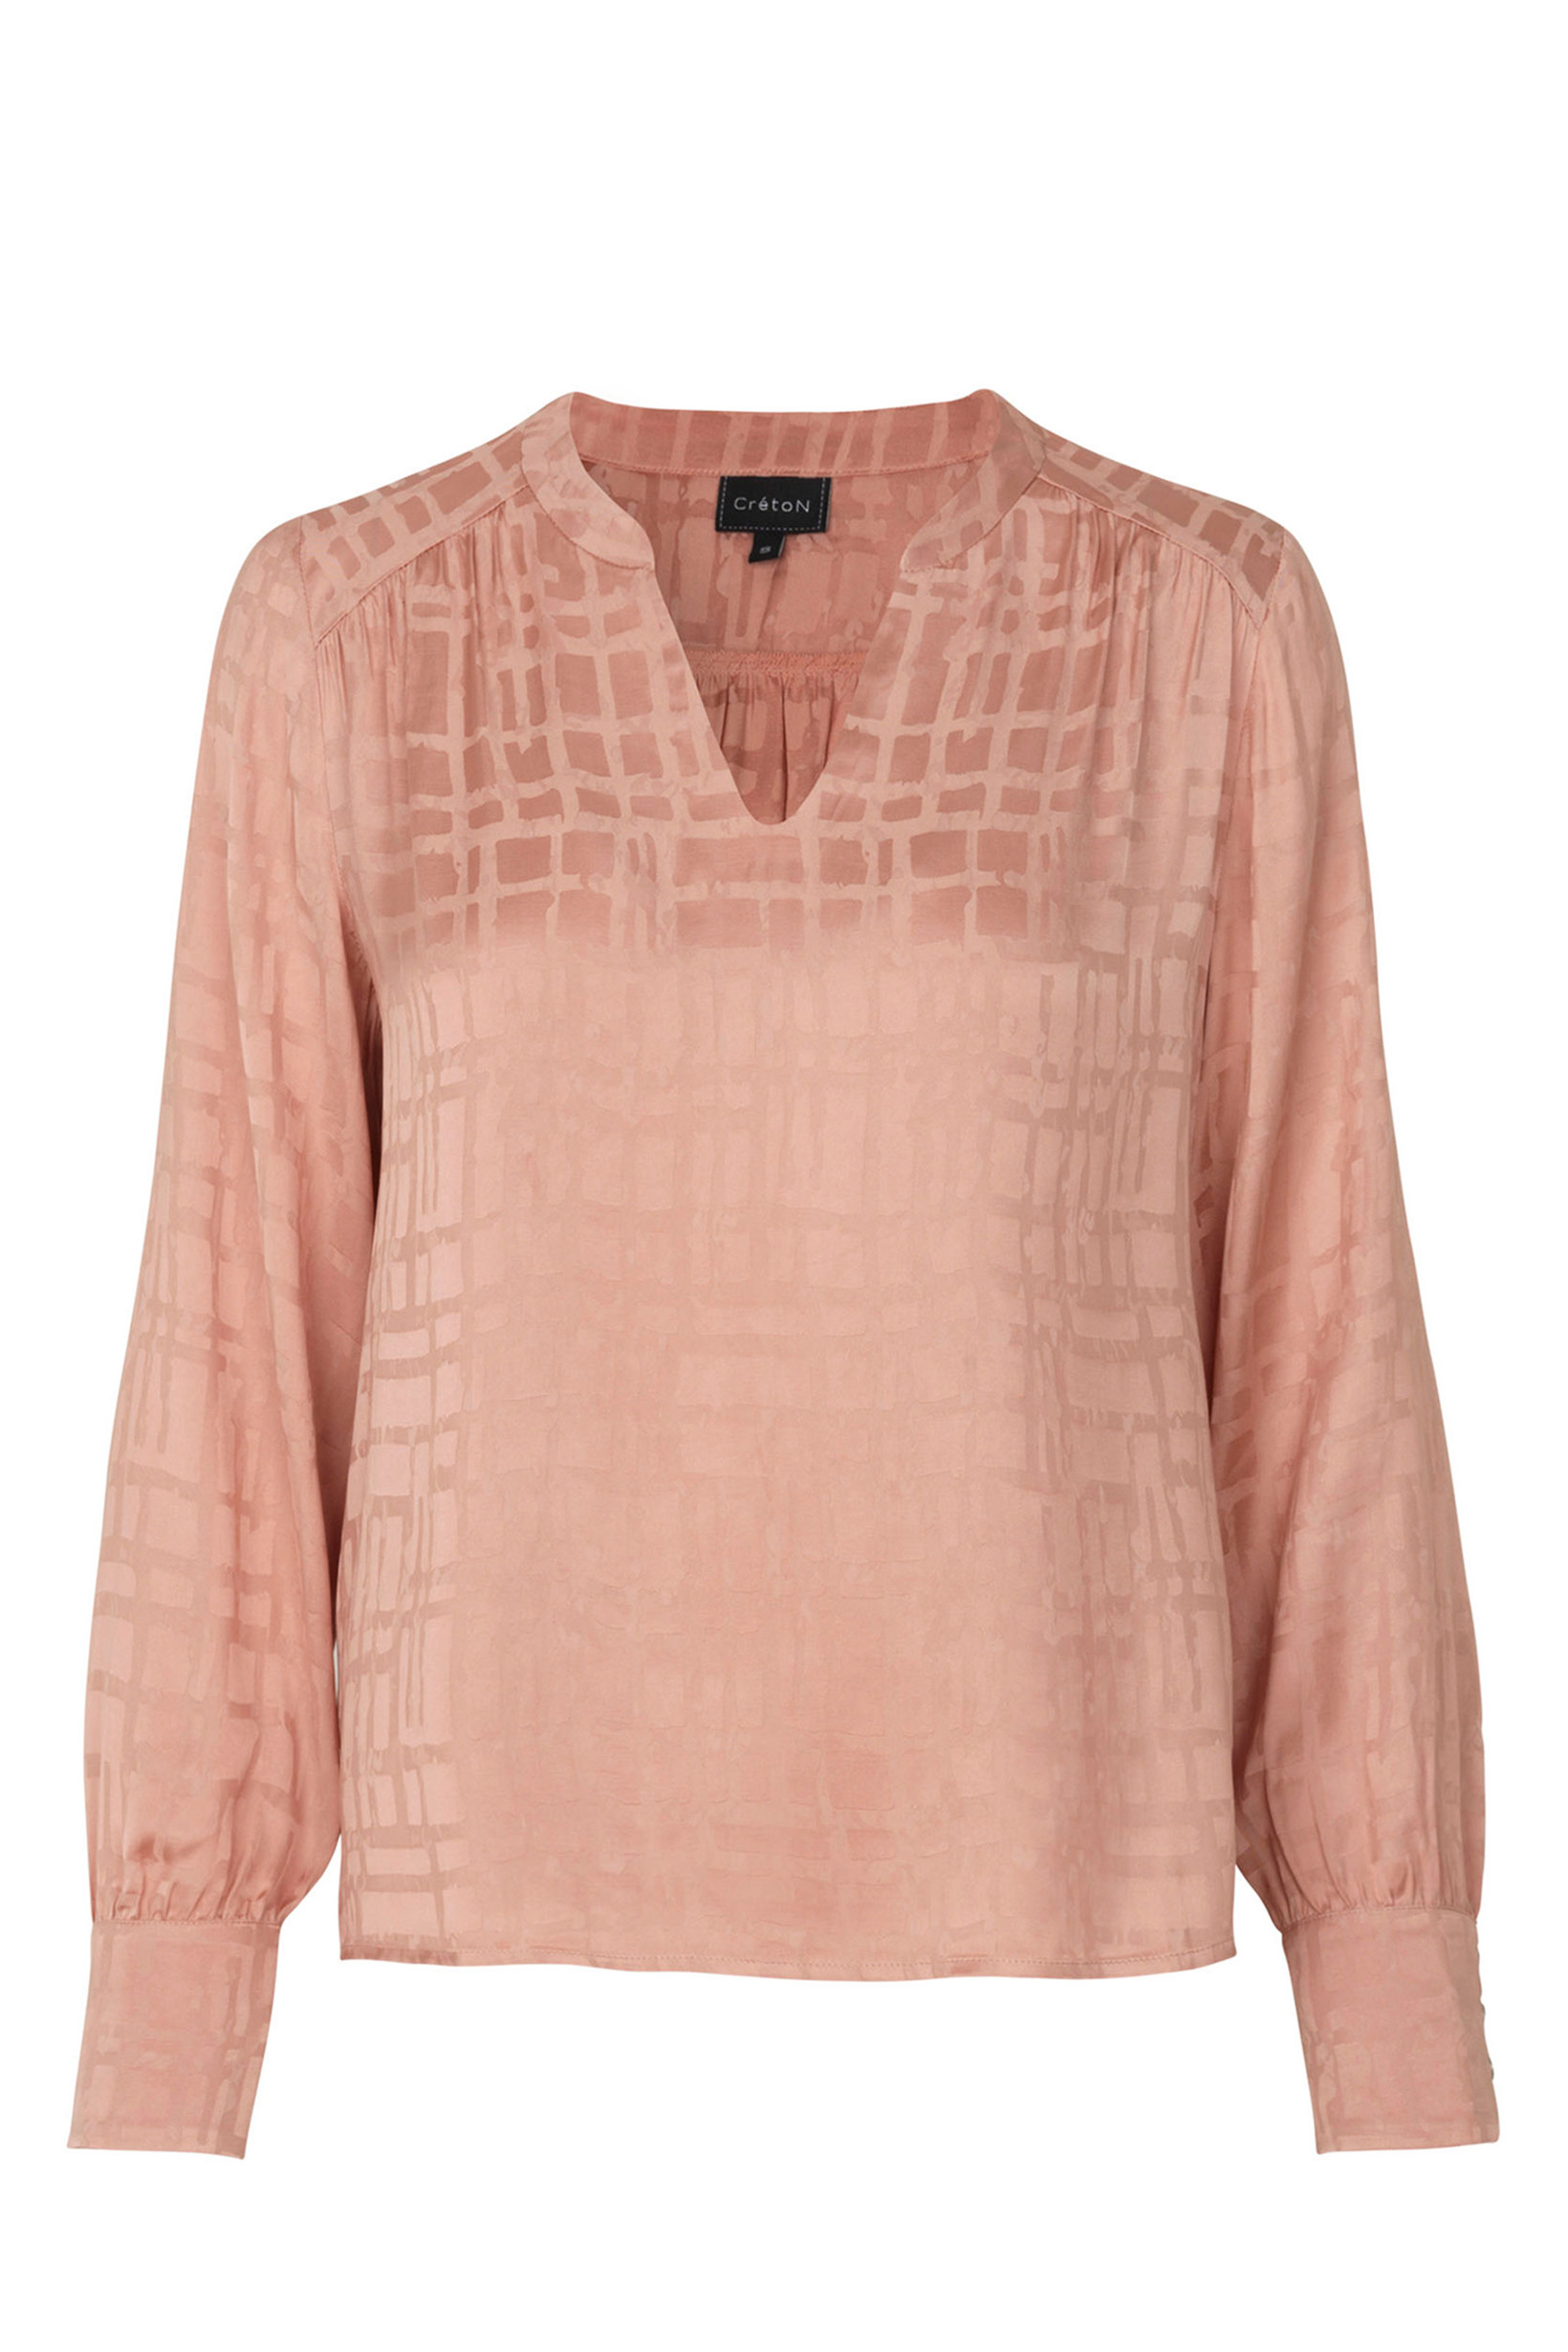 Image of   A-Willie Smuk Bluse i 2 Farver - Rosa